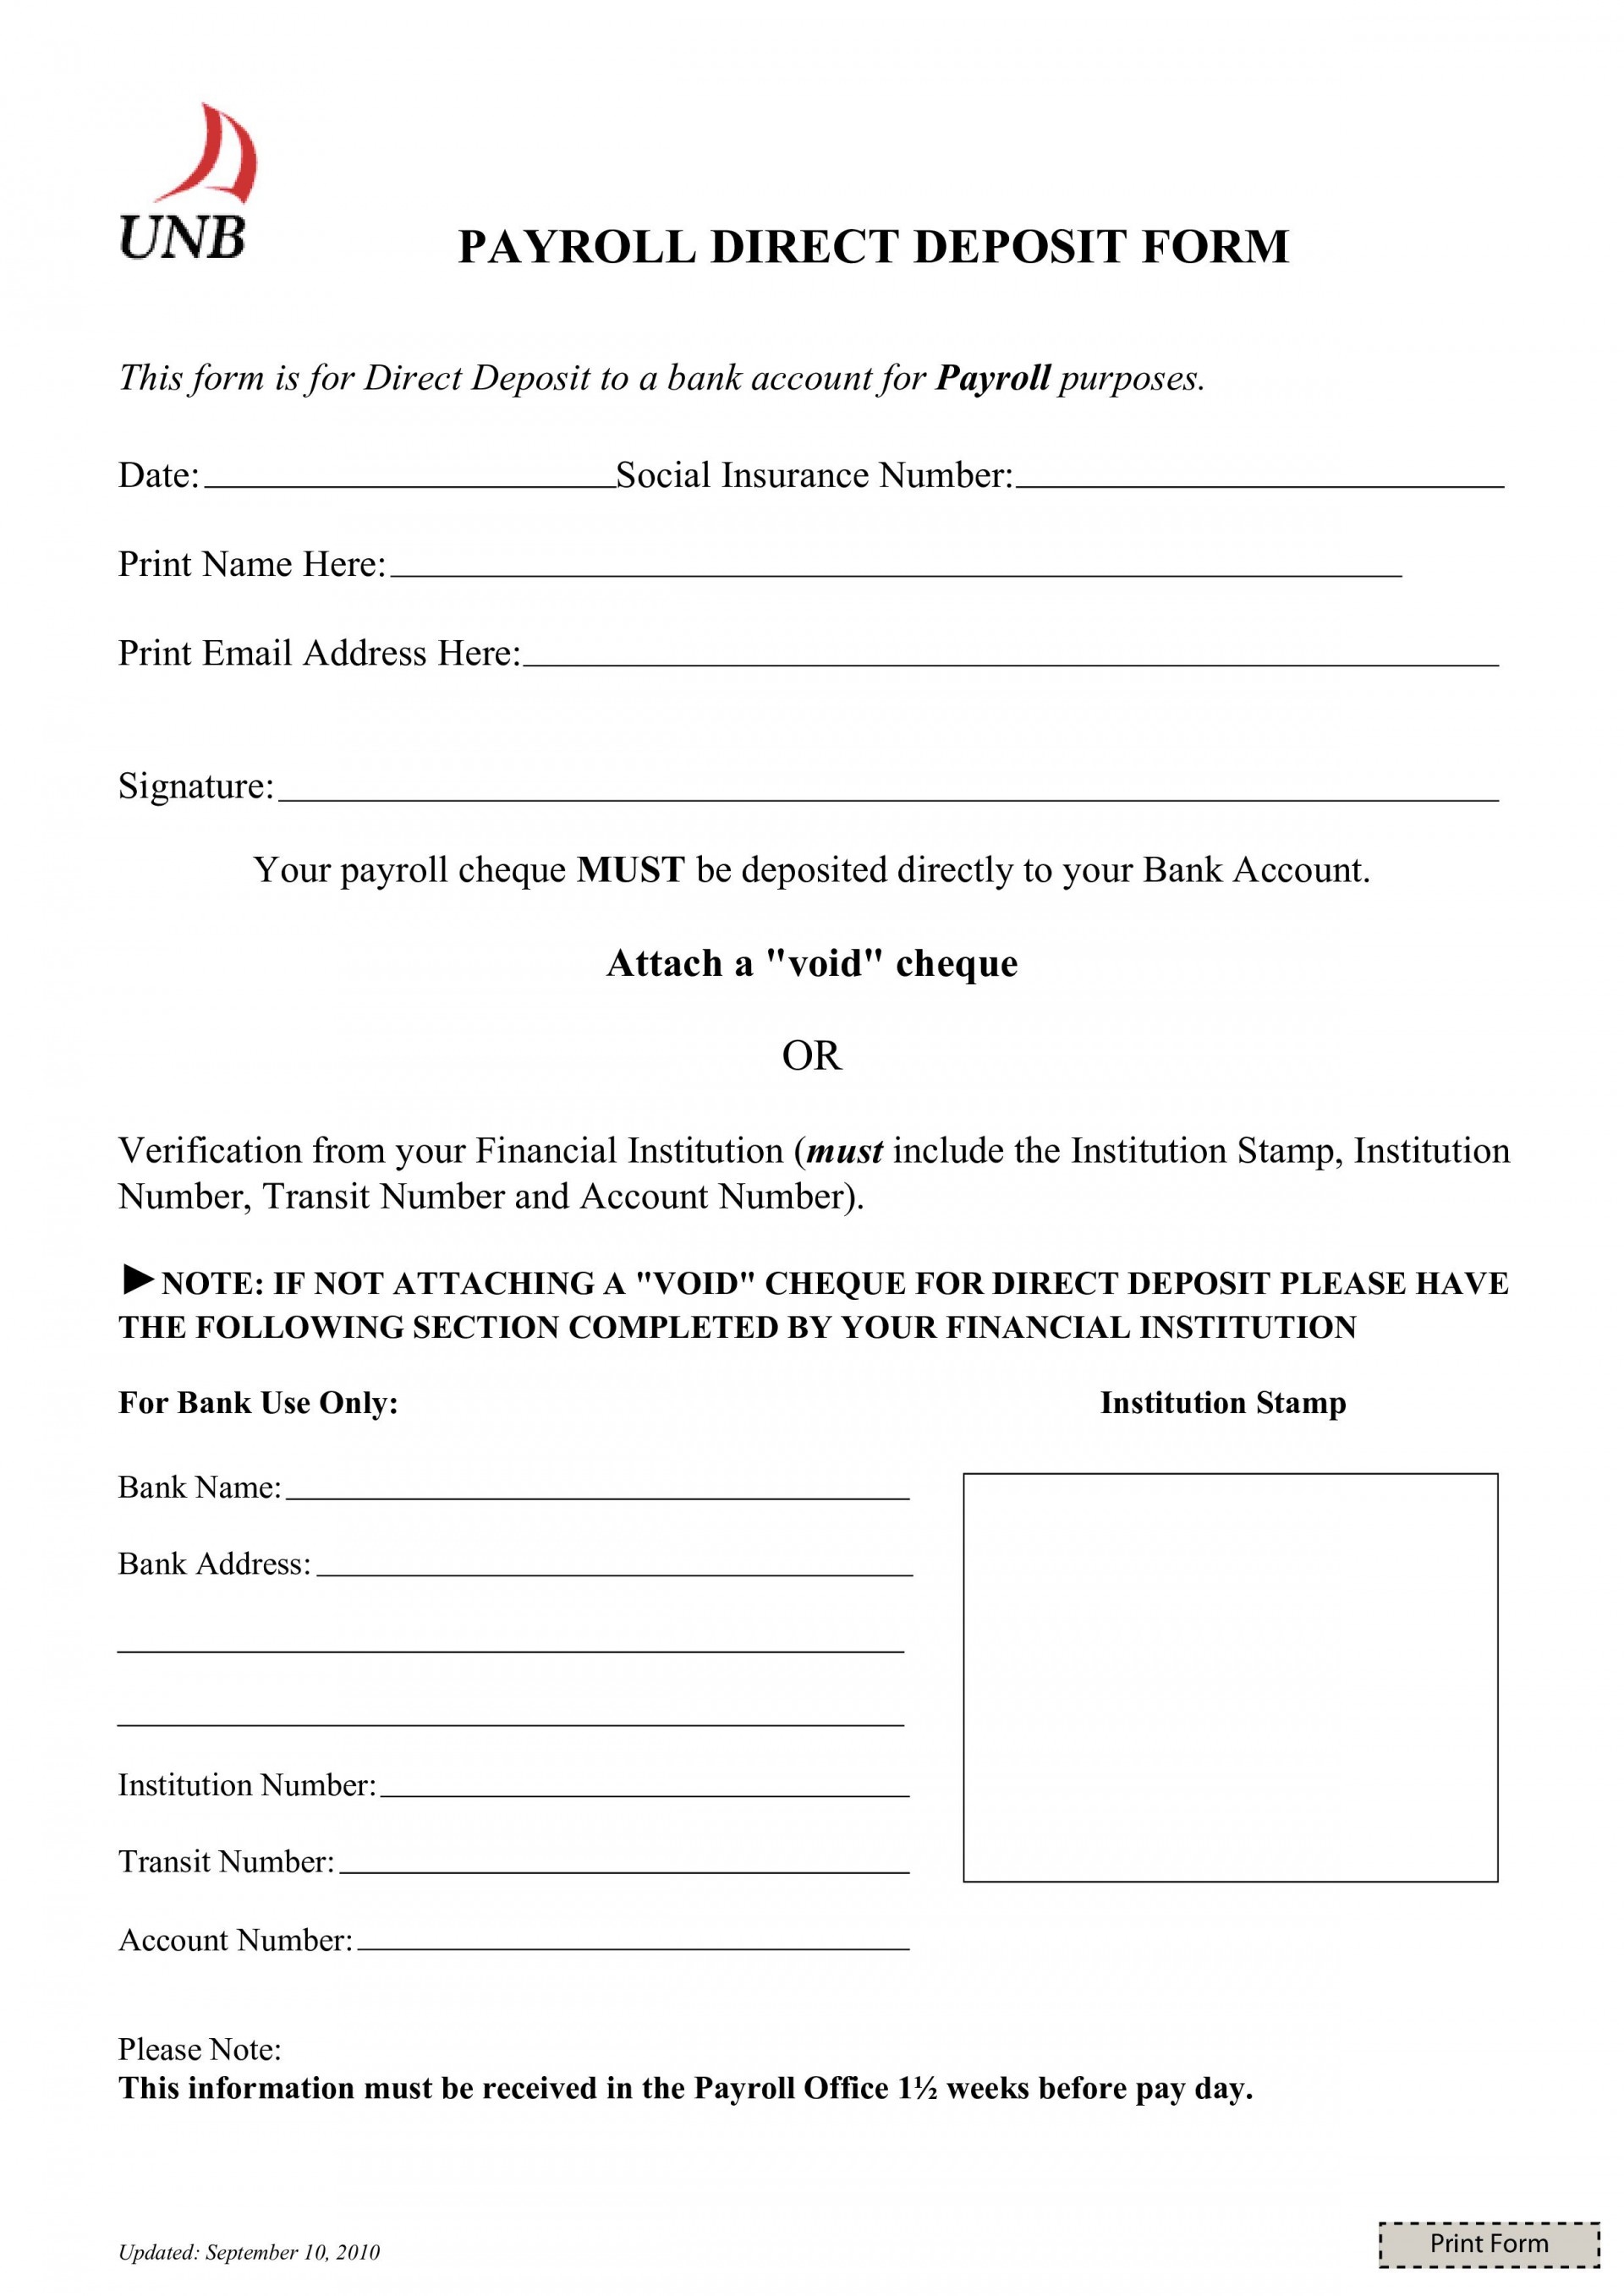 003 Magnificent Direct Deposit Form Template High Definition  Multiple Account Ach Authorization1920